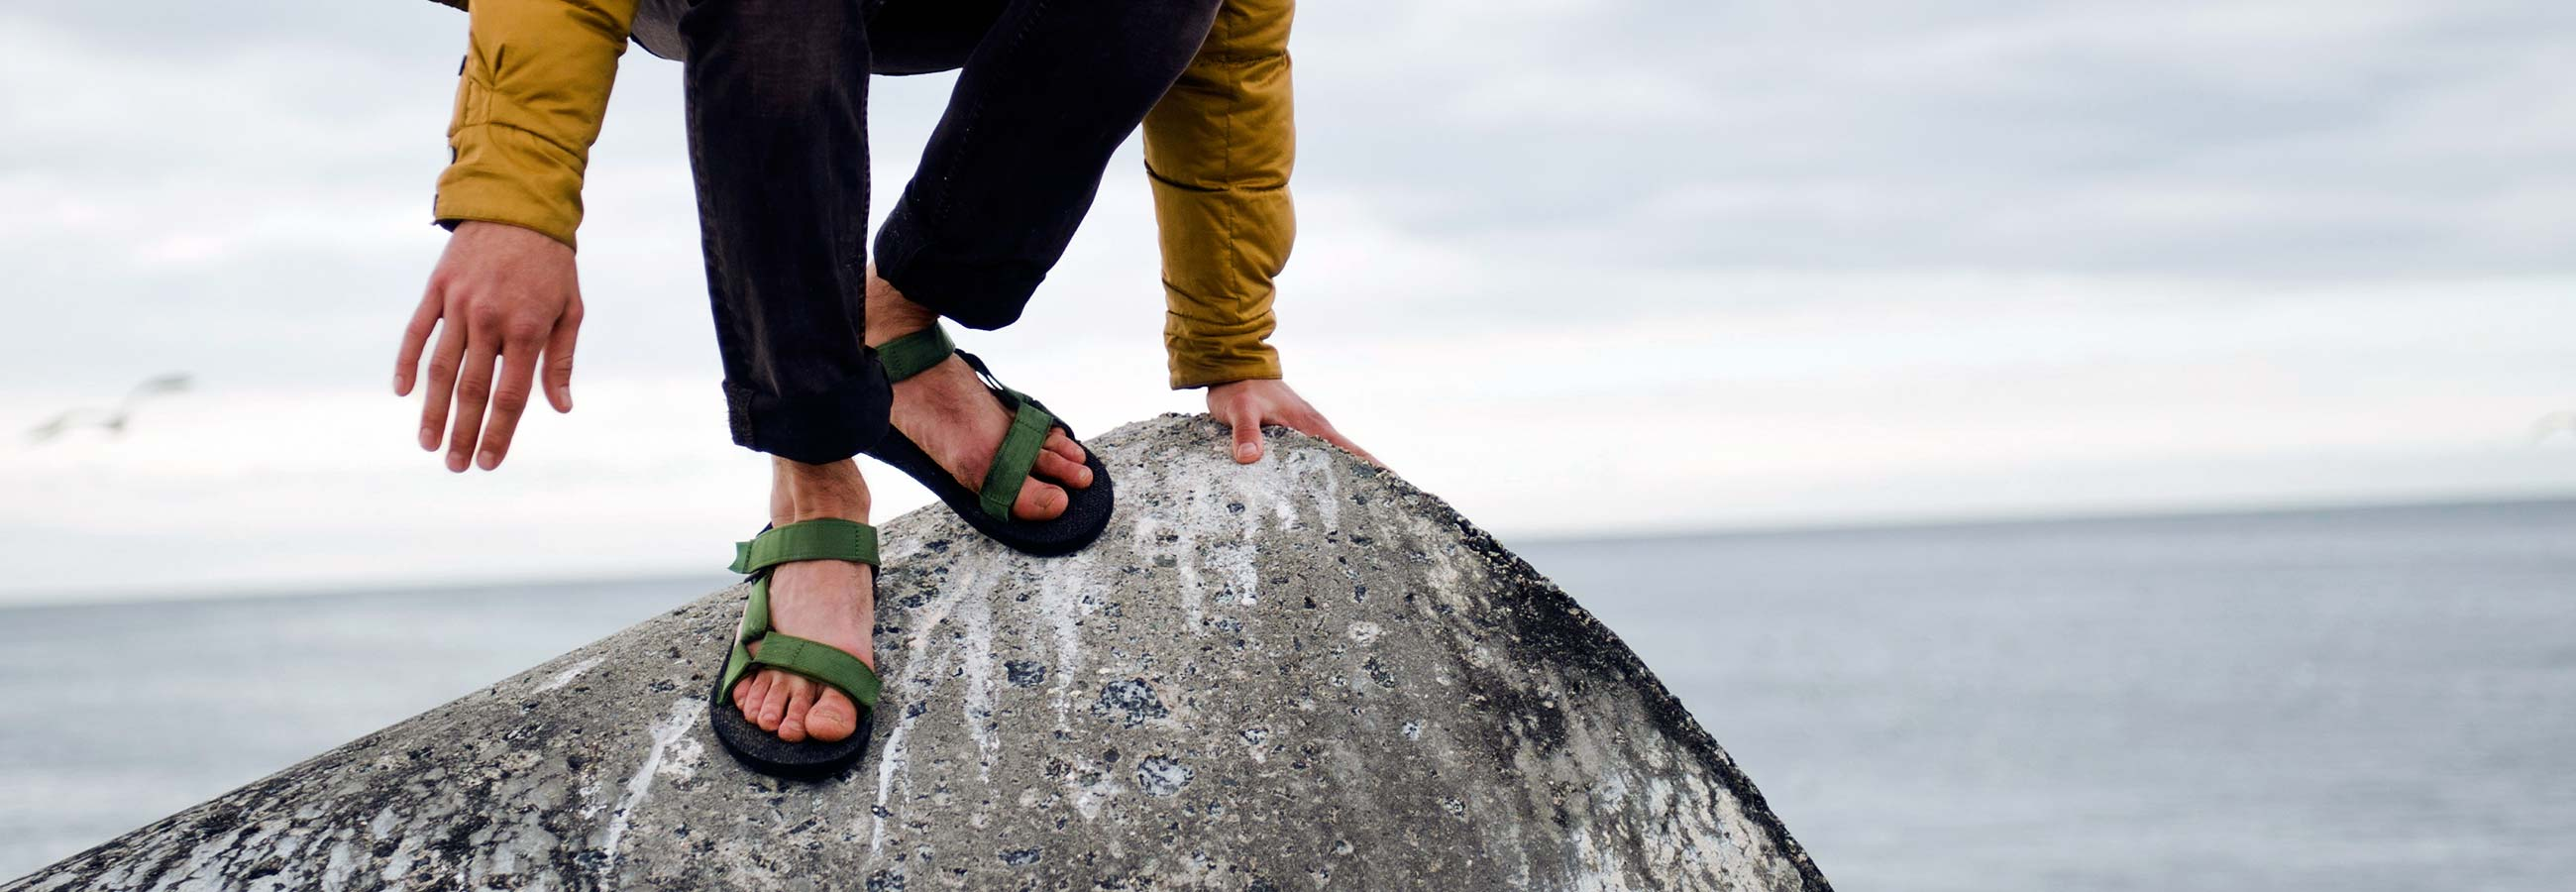 Lower half of person wearing Teva sandals climbing down a boulder overlooking the ocean.